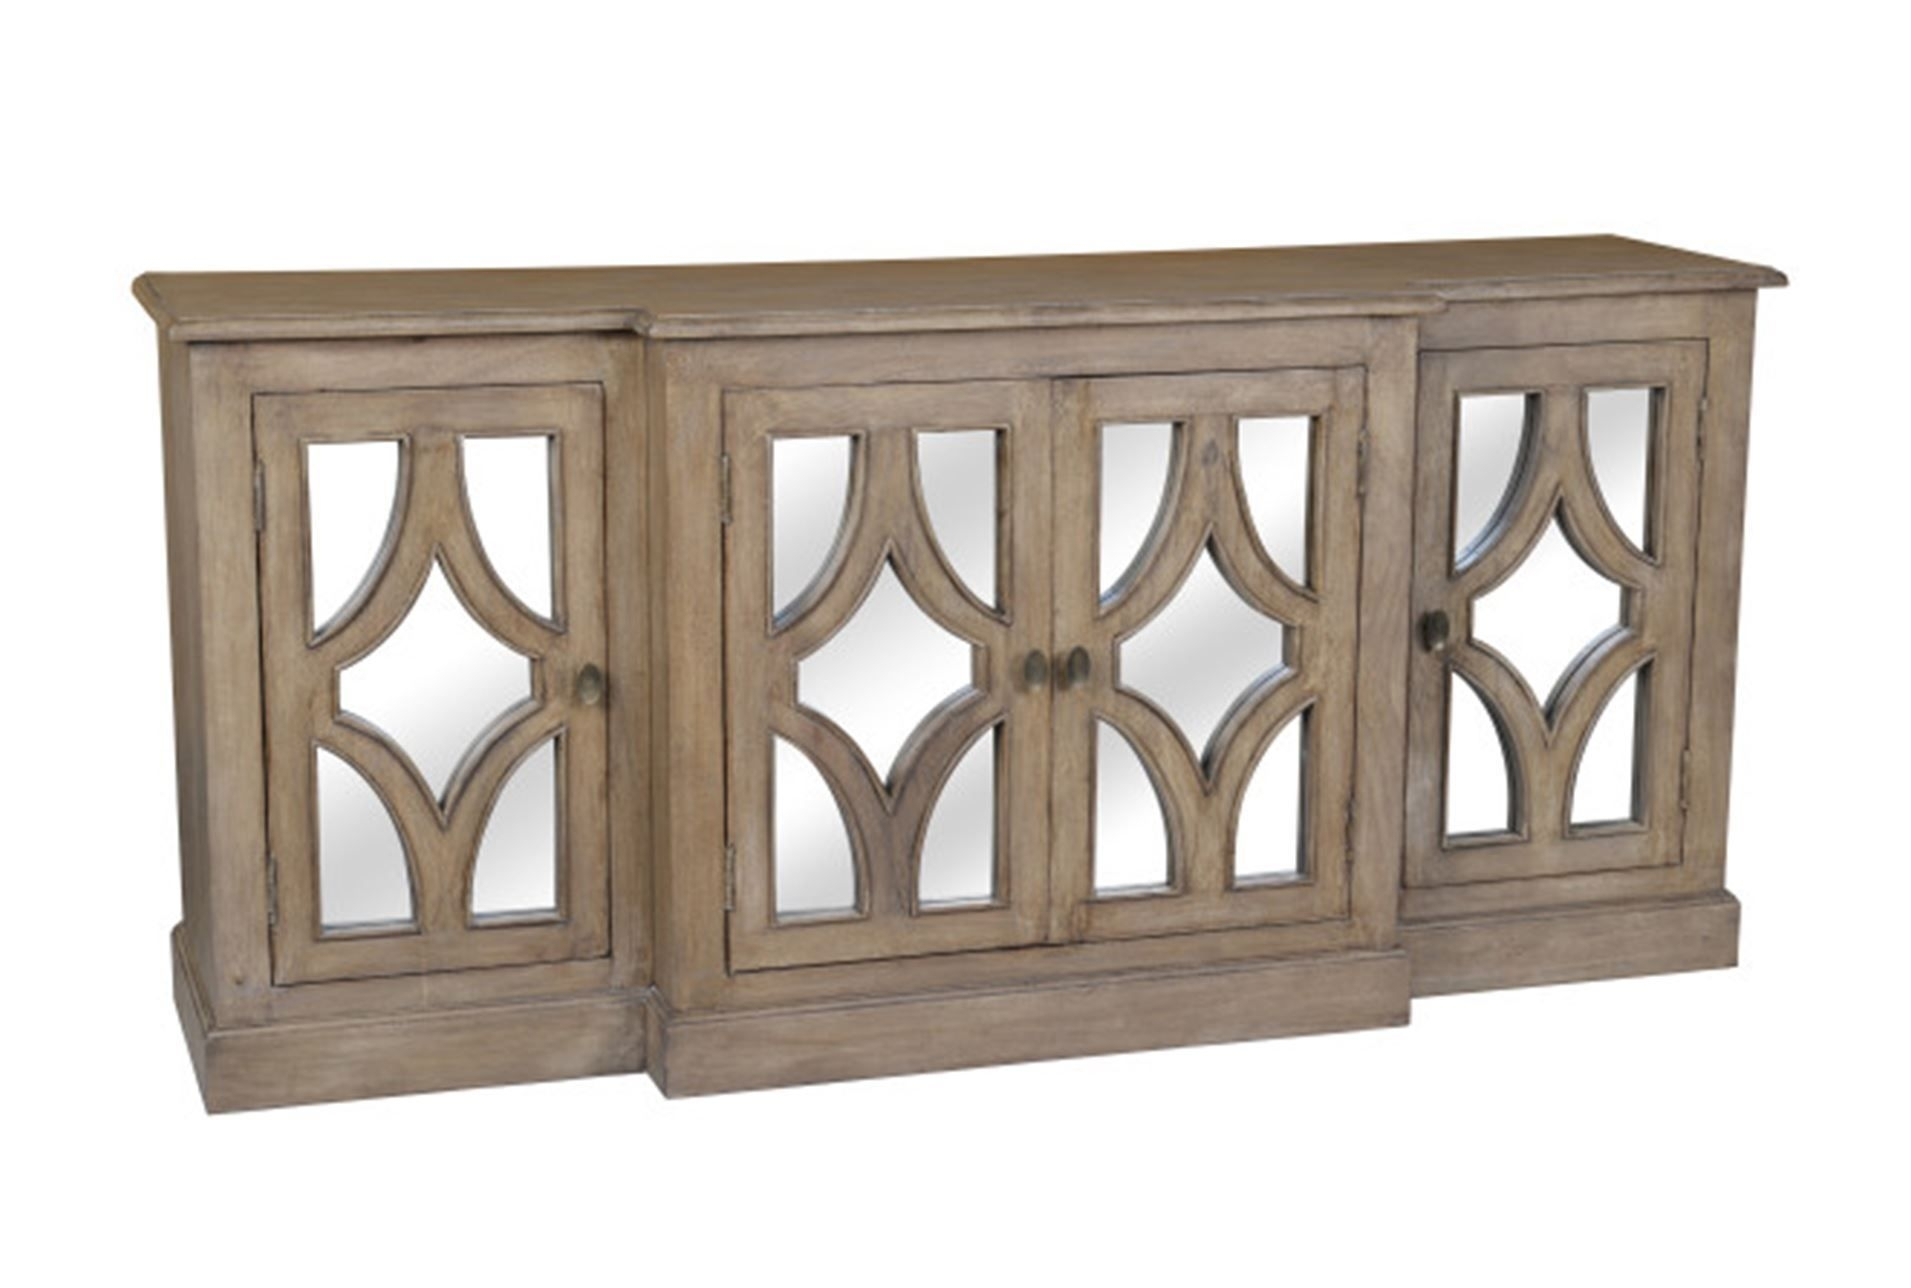 Otb Acacia Wood 4-Door Sideboard - Signature | Cherf | Pinterest within Zeema Sideboards (Image 18 of 30)